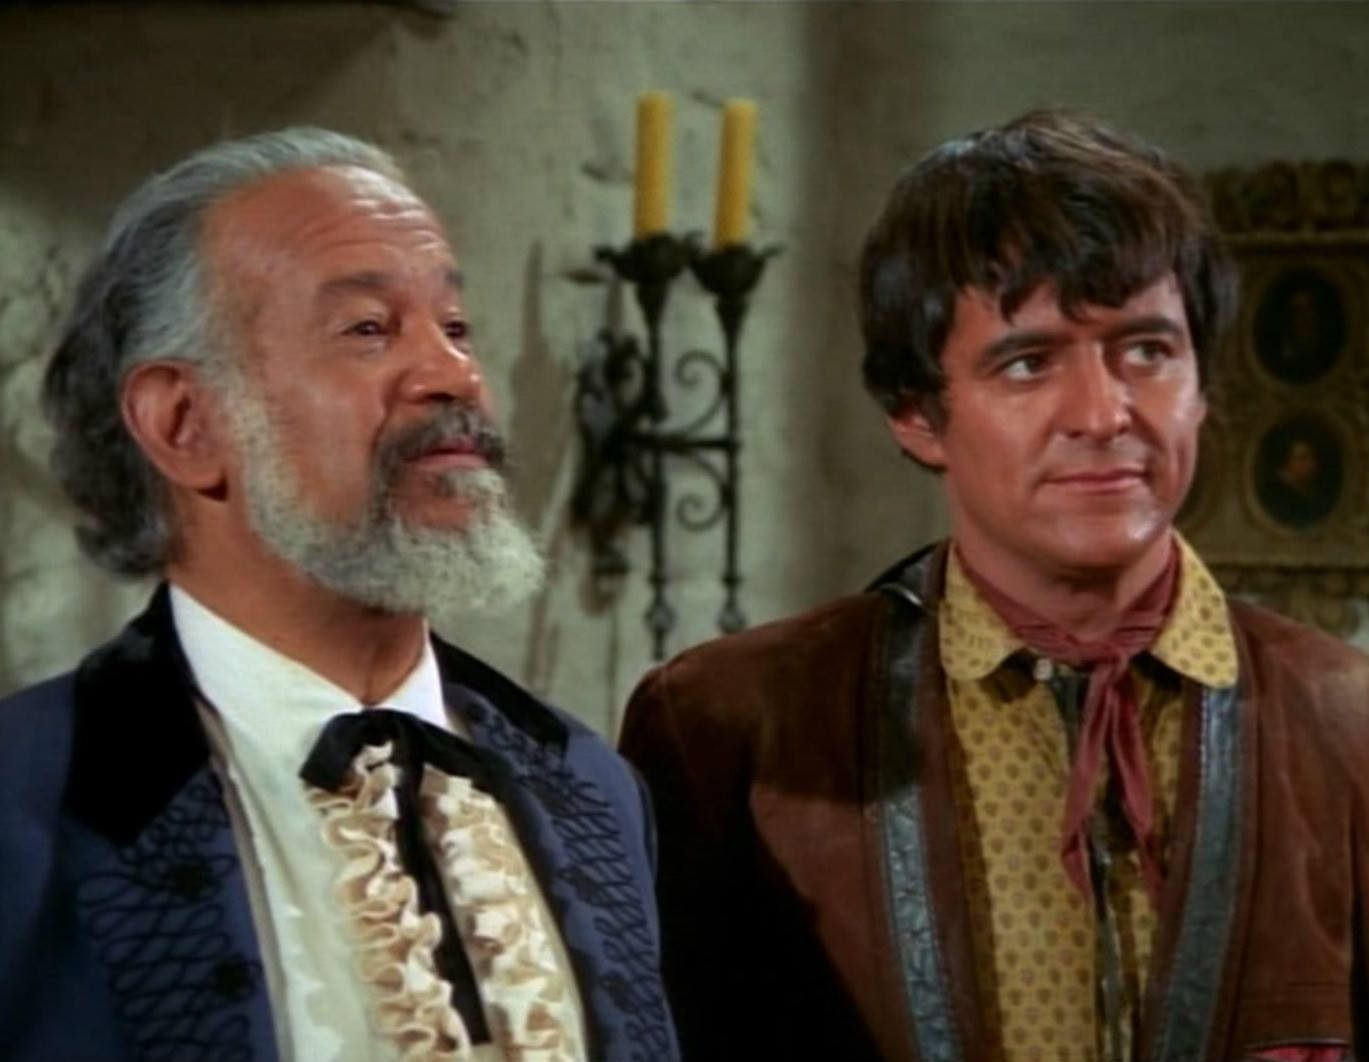 Father and son | The high chaparral, Western film, Tv westerns